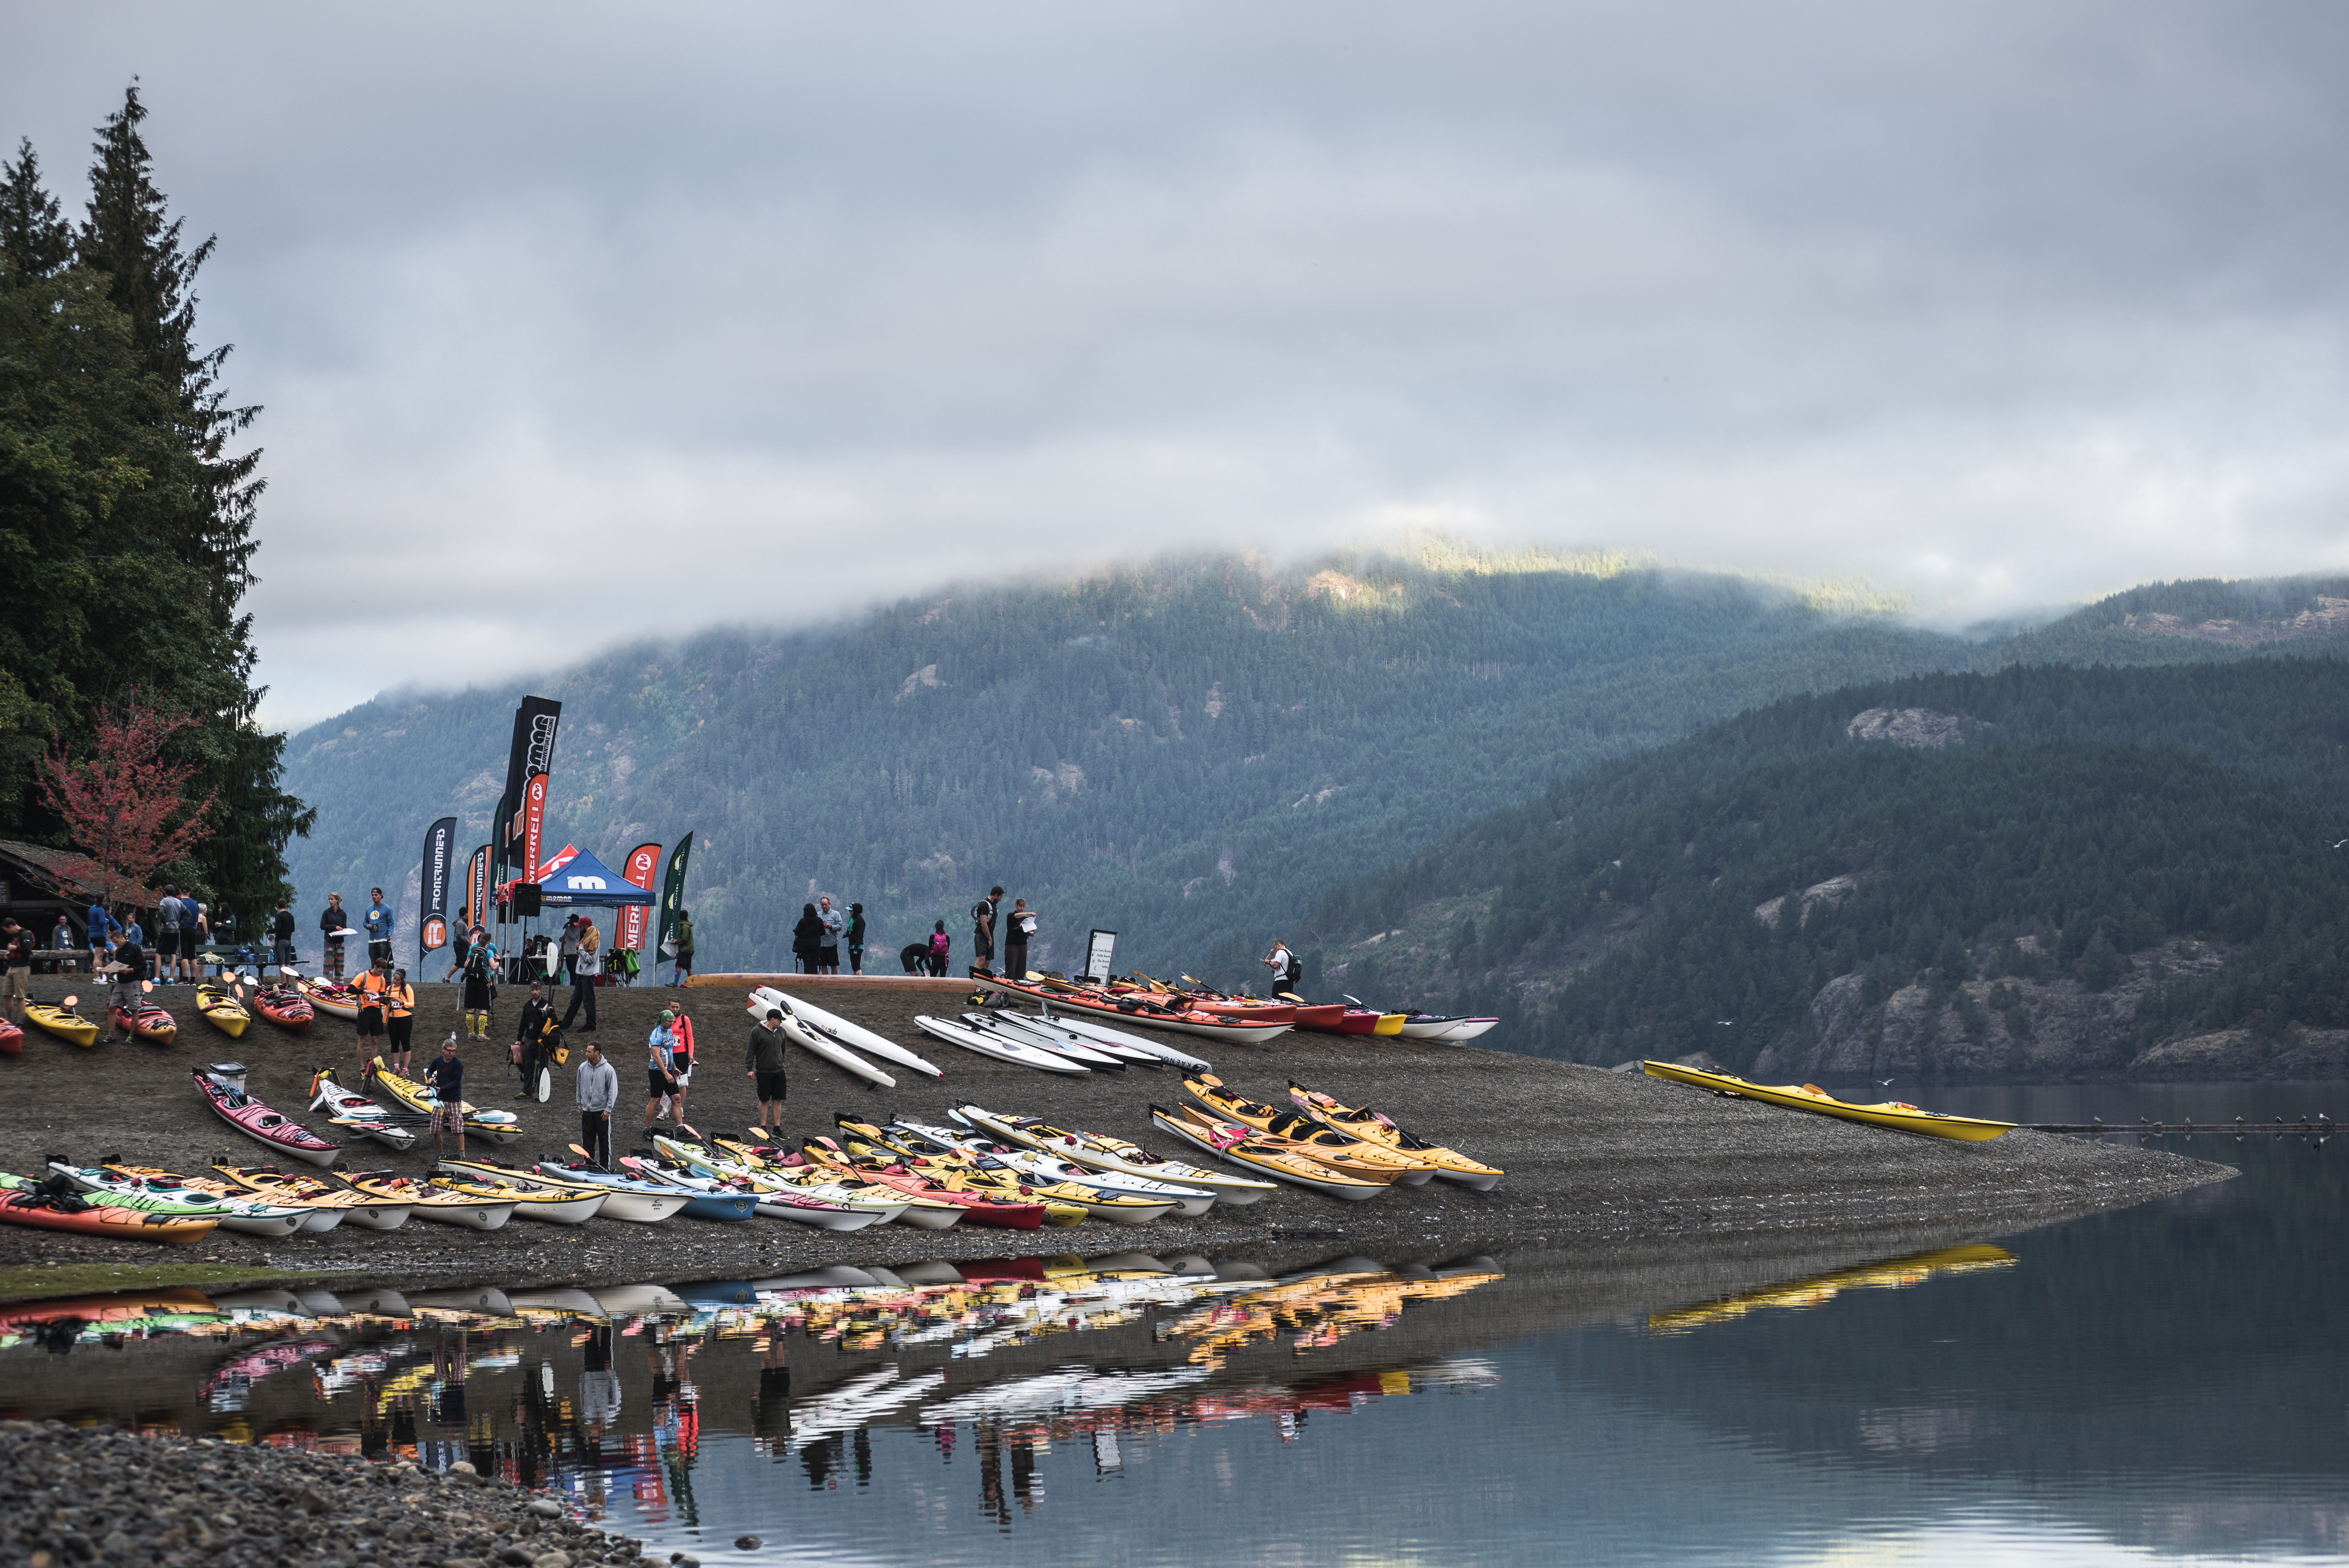 Kayaks at the 2014 MOMAR Cumberland, BC - Dave Silver, Record Sell-out for the Atmosphere Mind Over Mountain Adventure Race